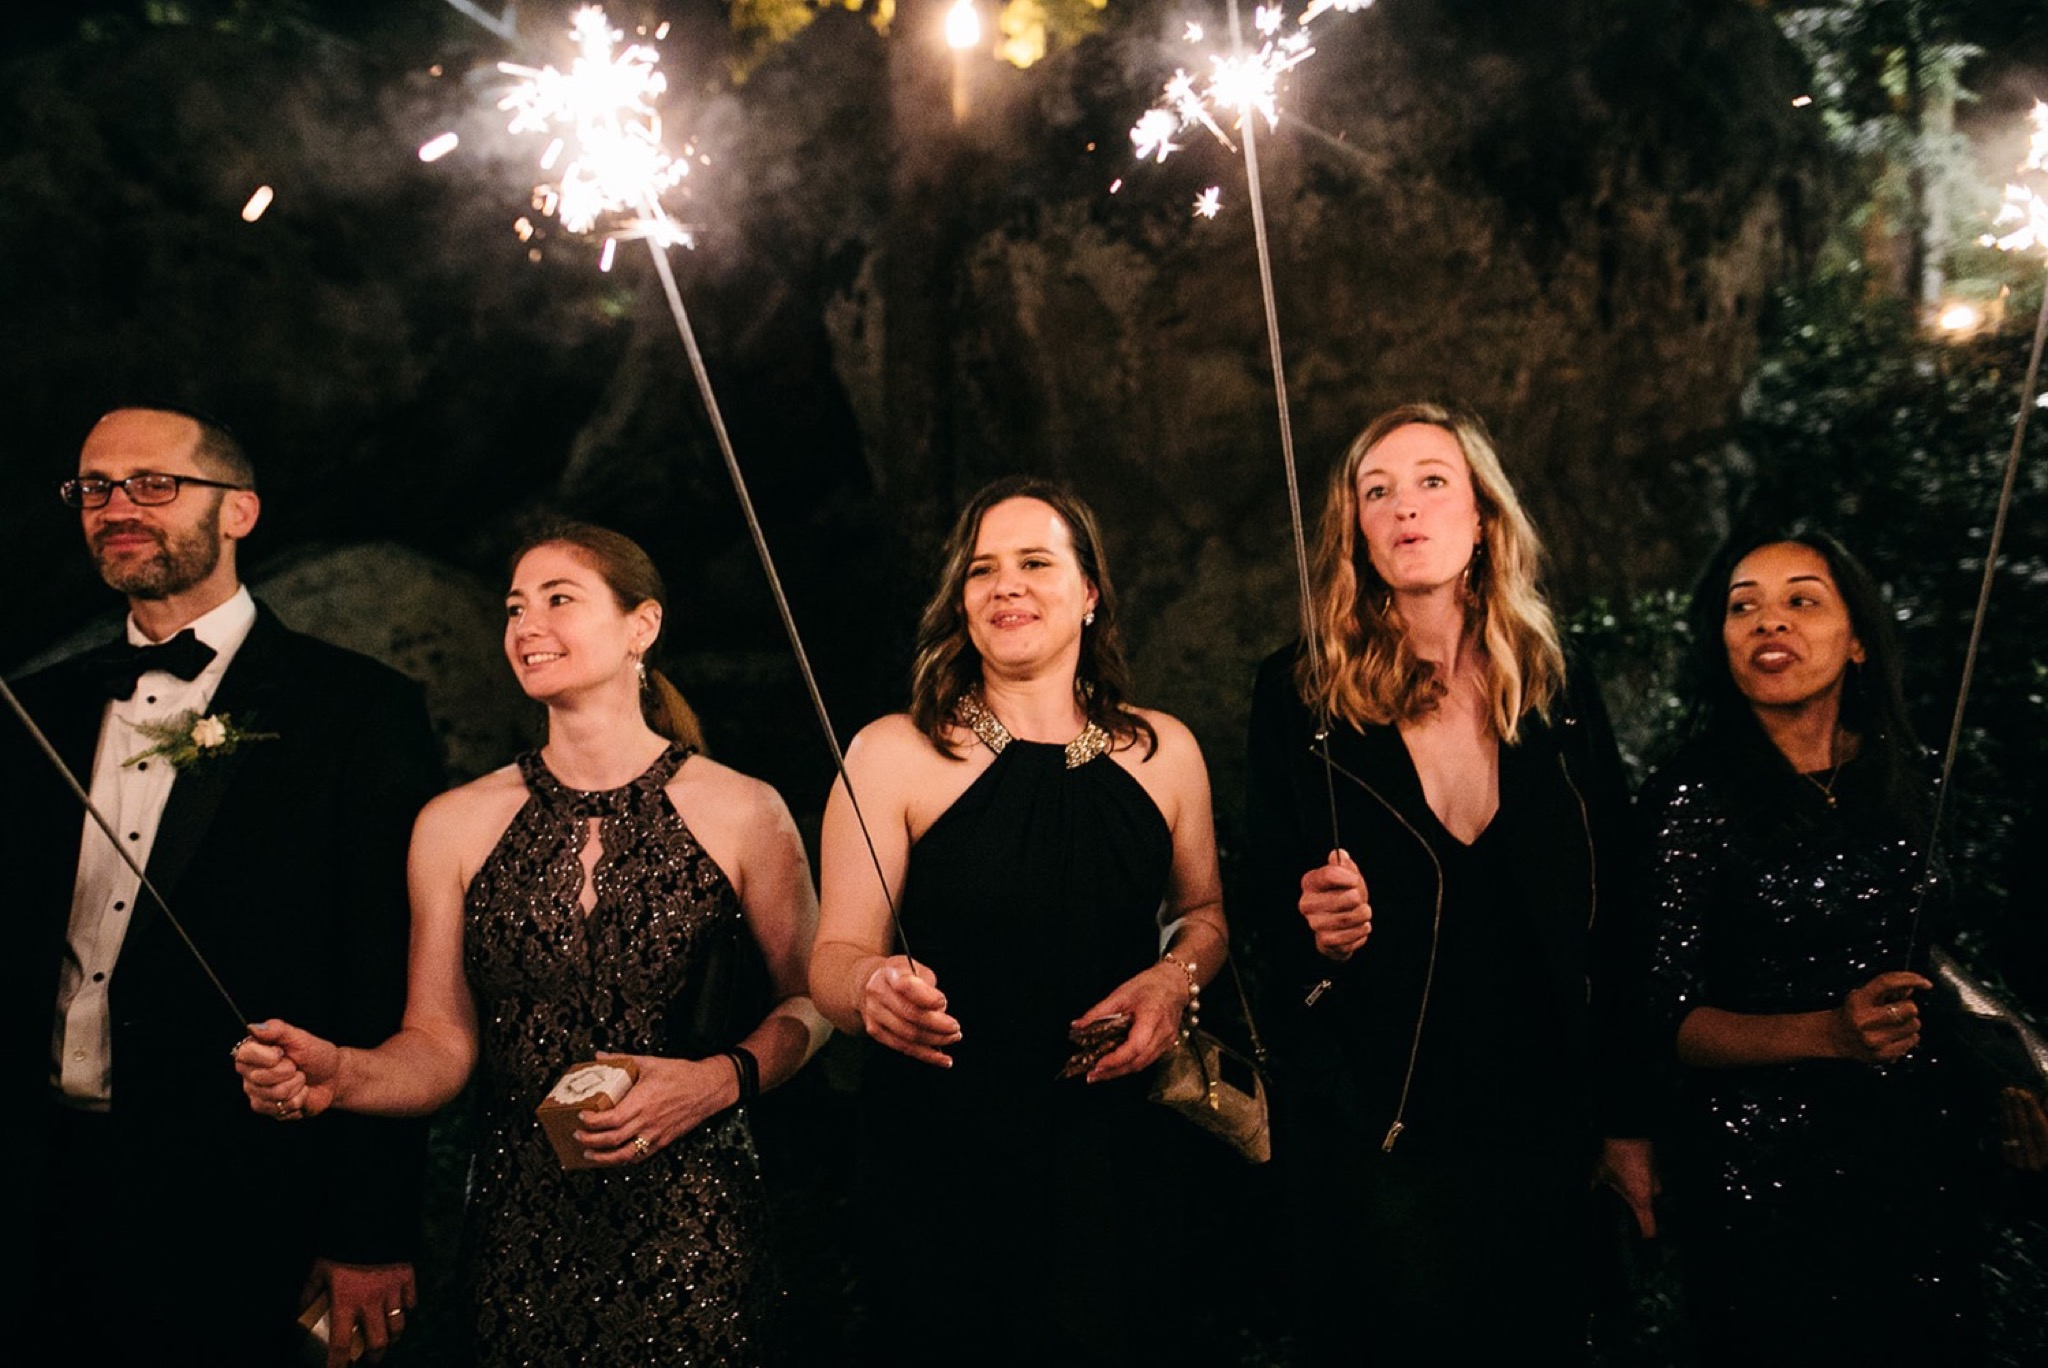 wedding guests hold long sparklers and smile